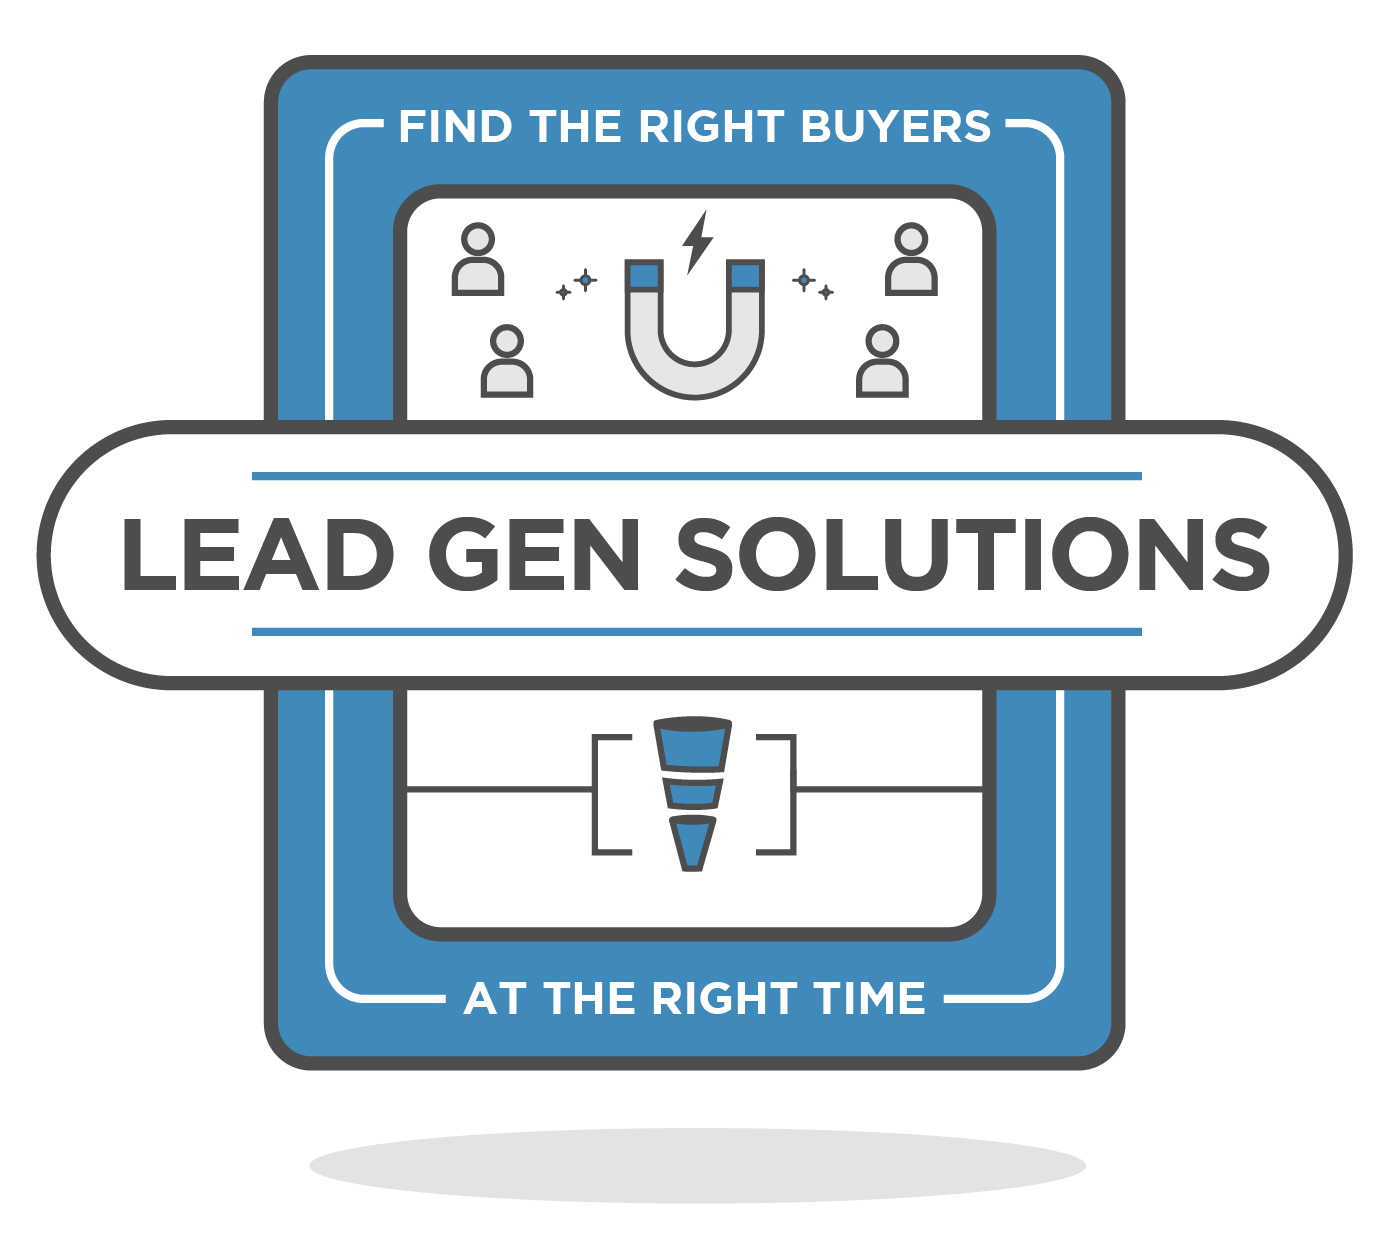 Engage and Convert Buyers